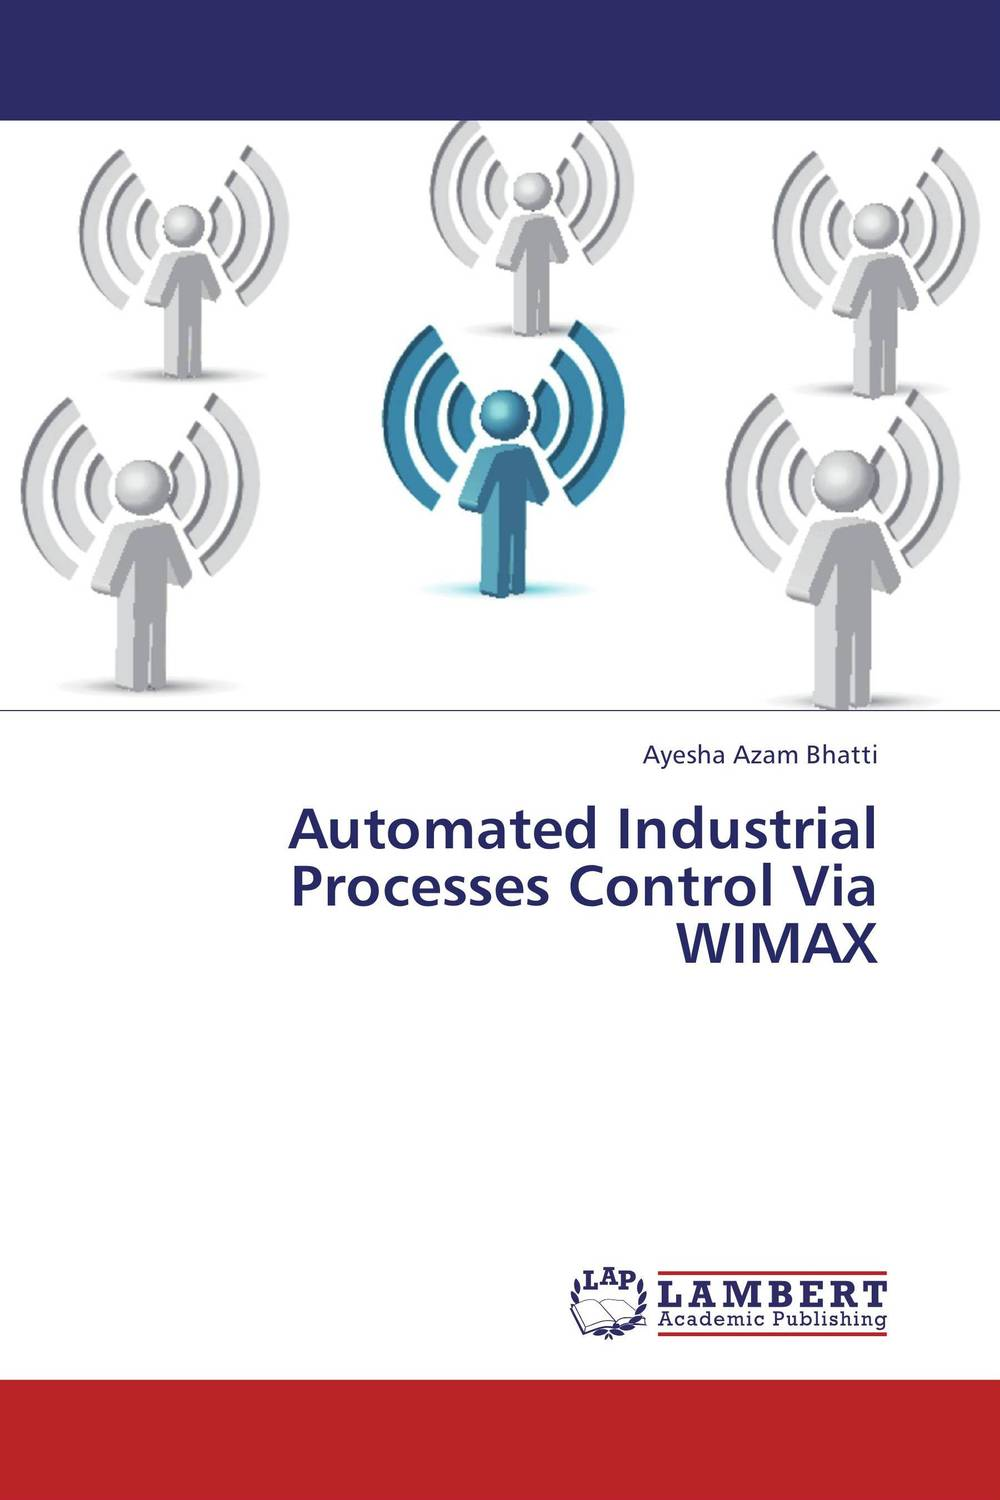 Automated Industrial Processes Control Via WIMAX optimal pll loop filter design for mobile wimax via lmi